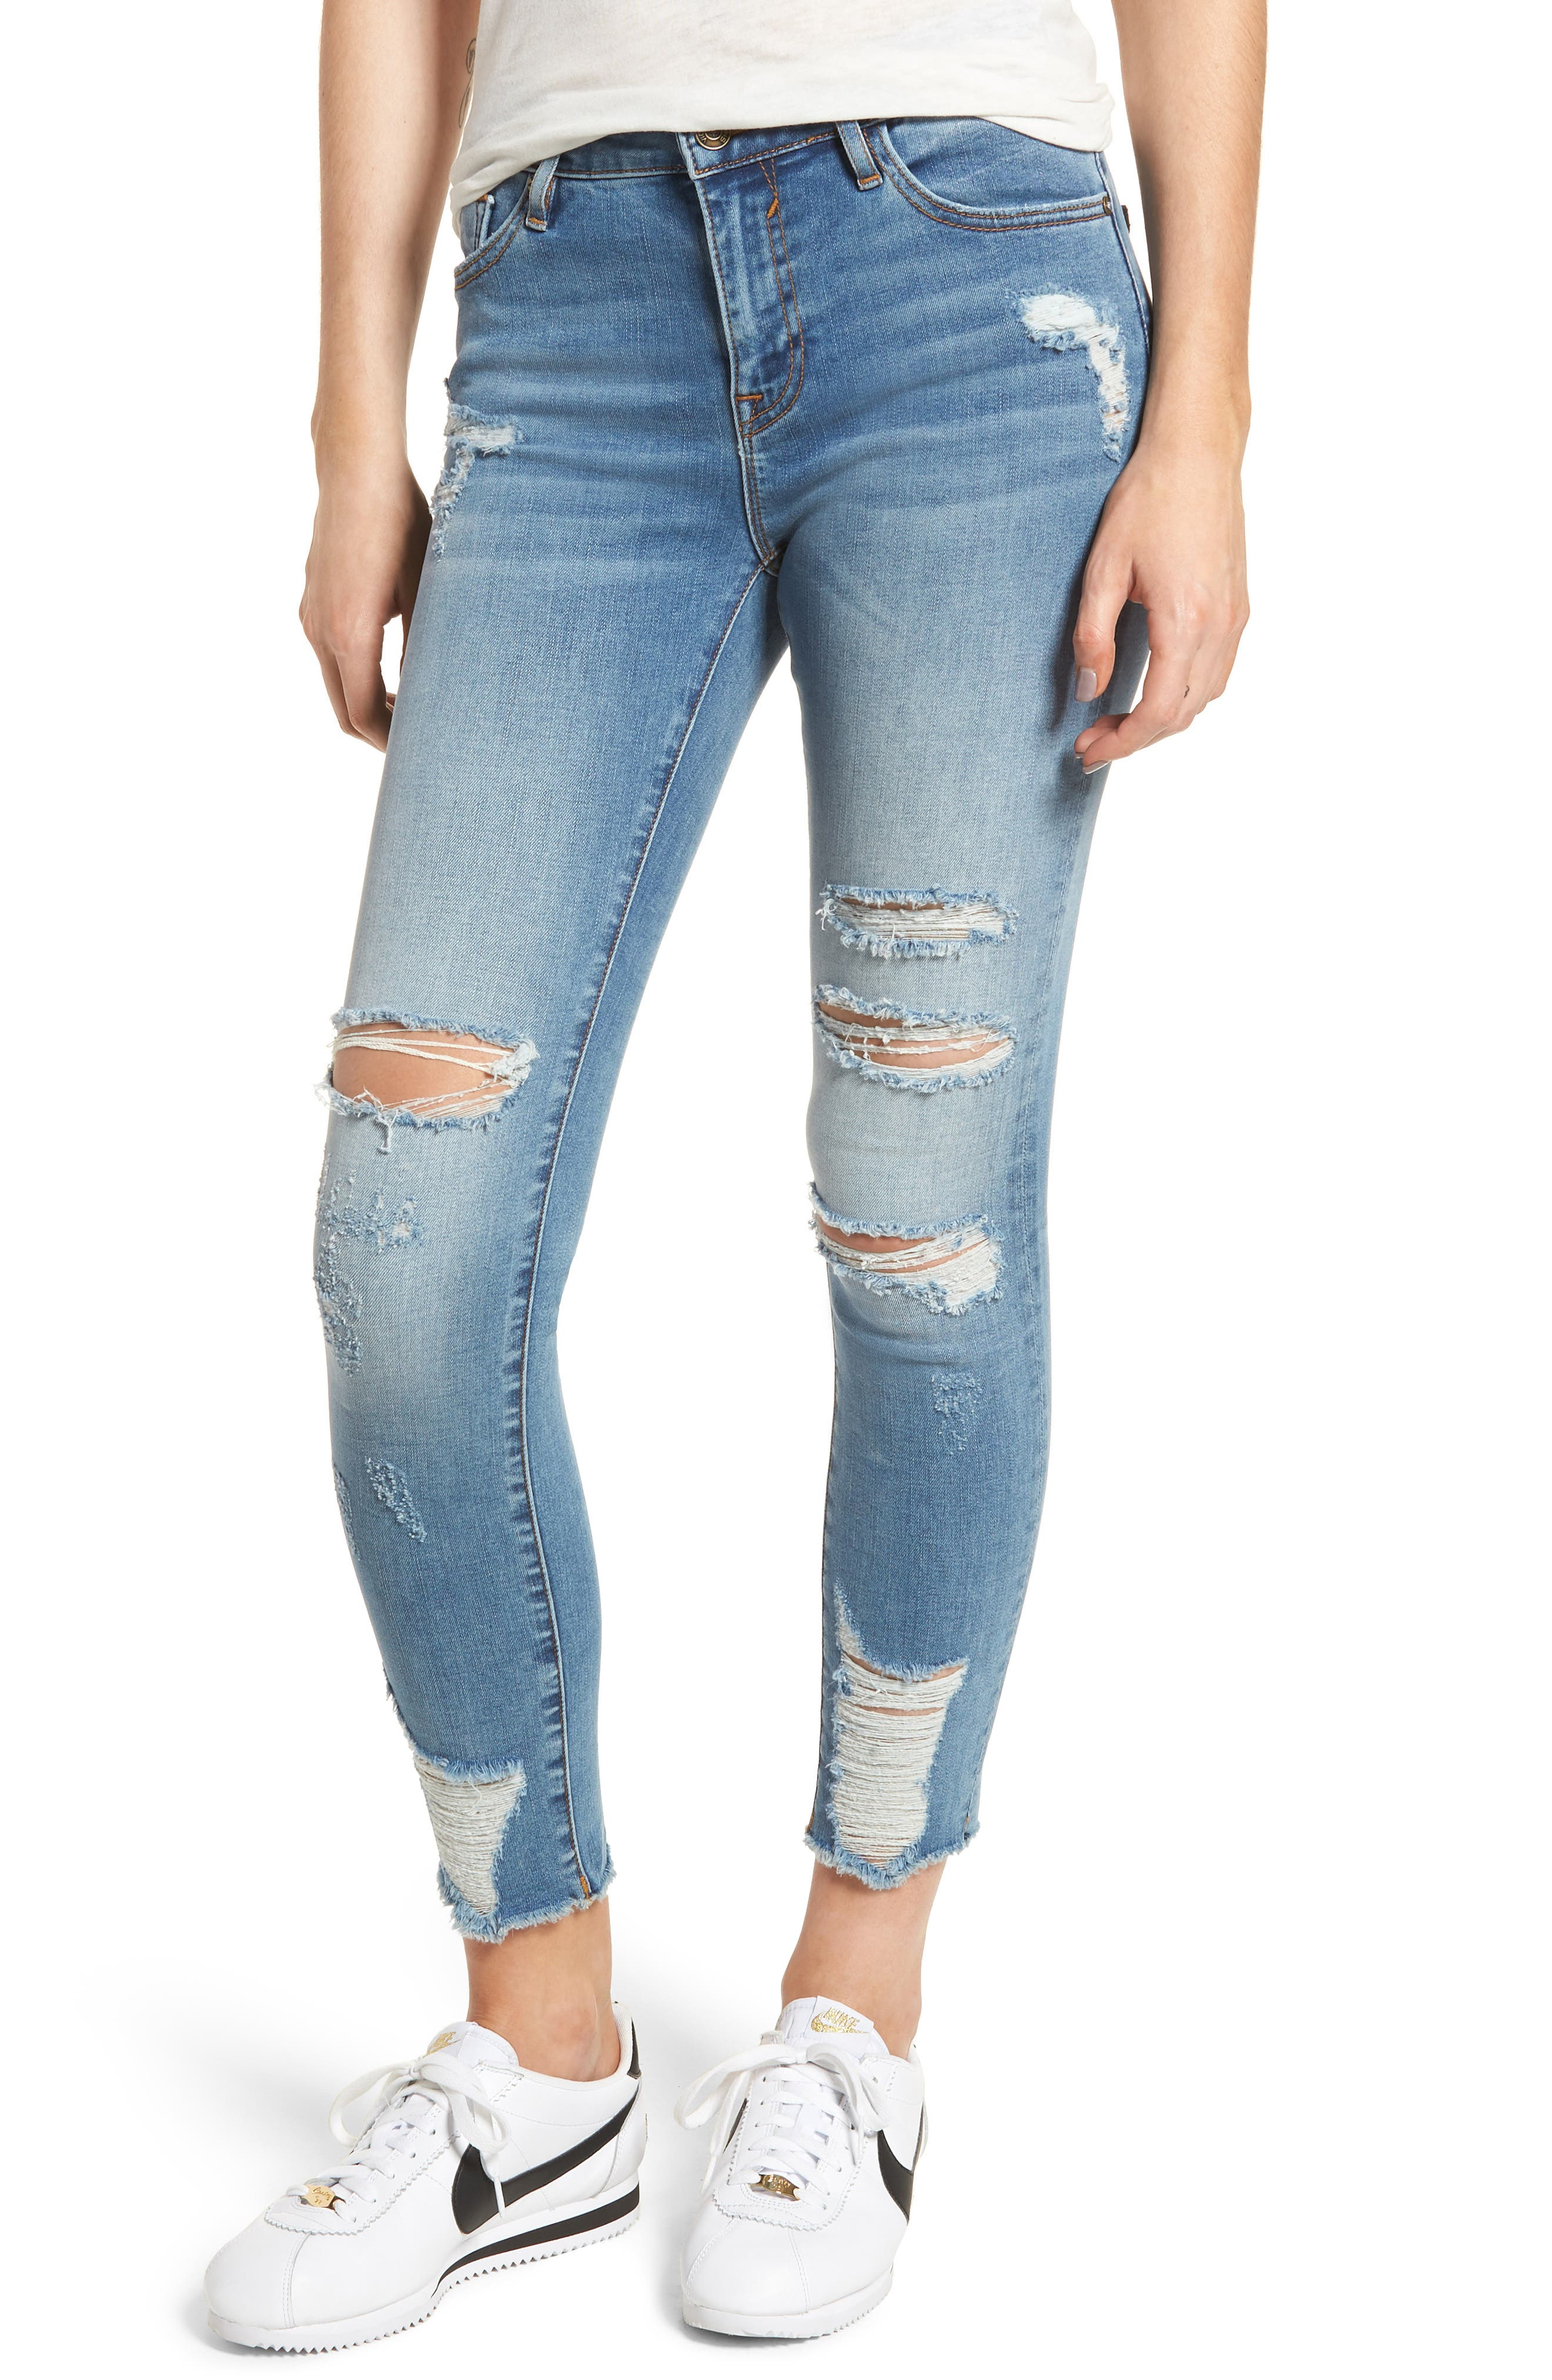 Marley Distressed Skinny Jeans,                             Main thumbnail 1, color,                             Medium Wash